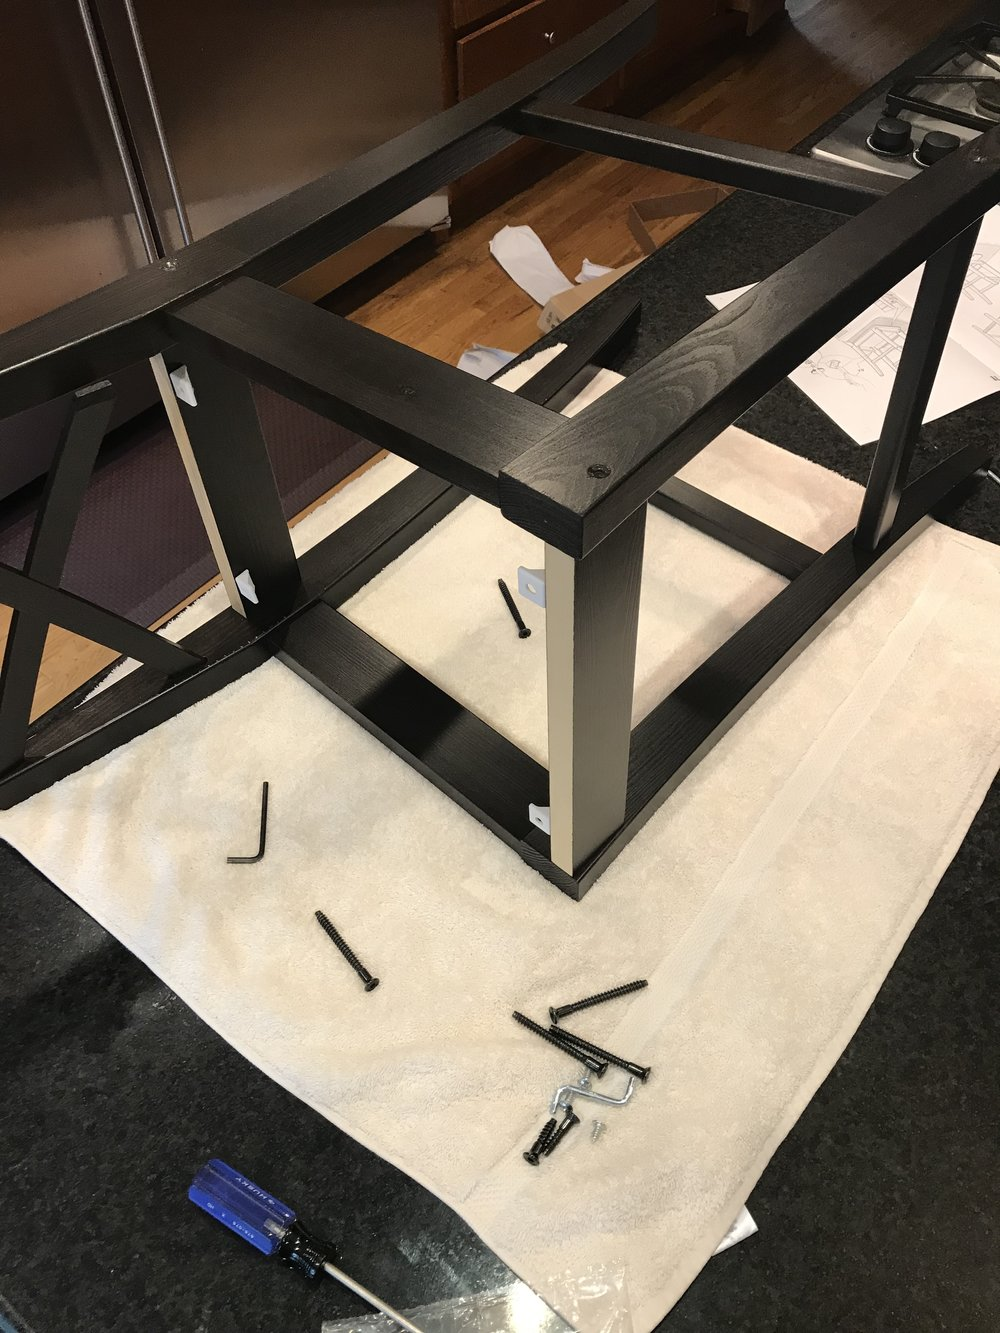 Building furniture